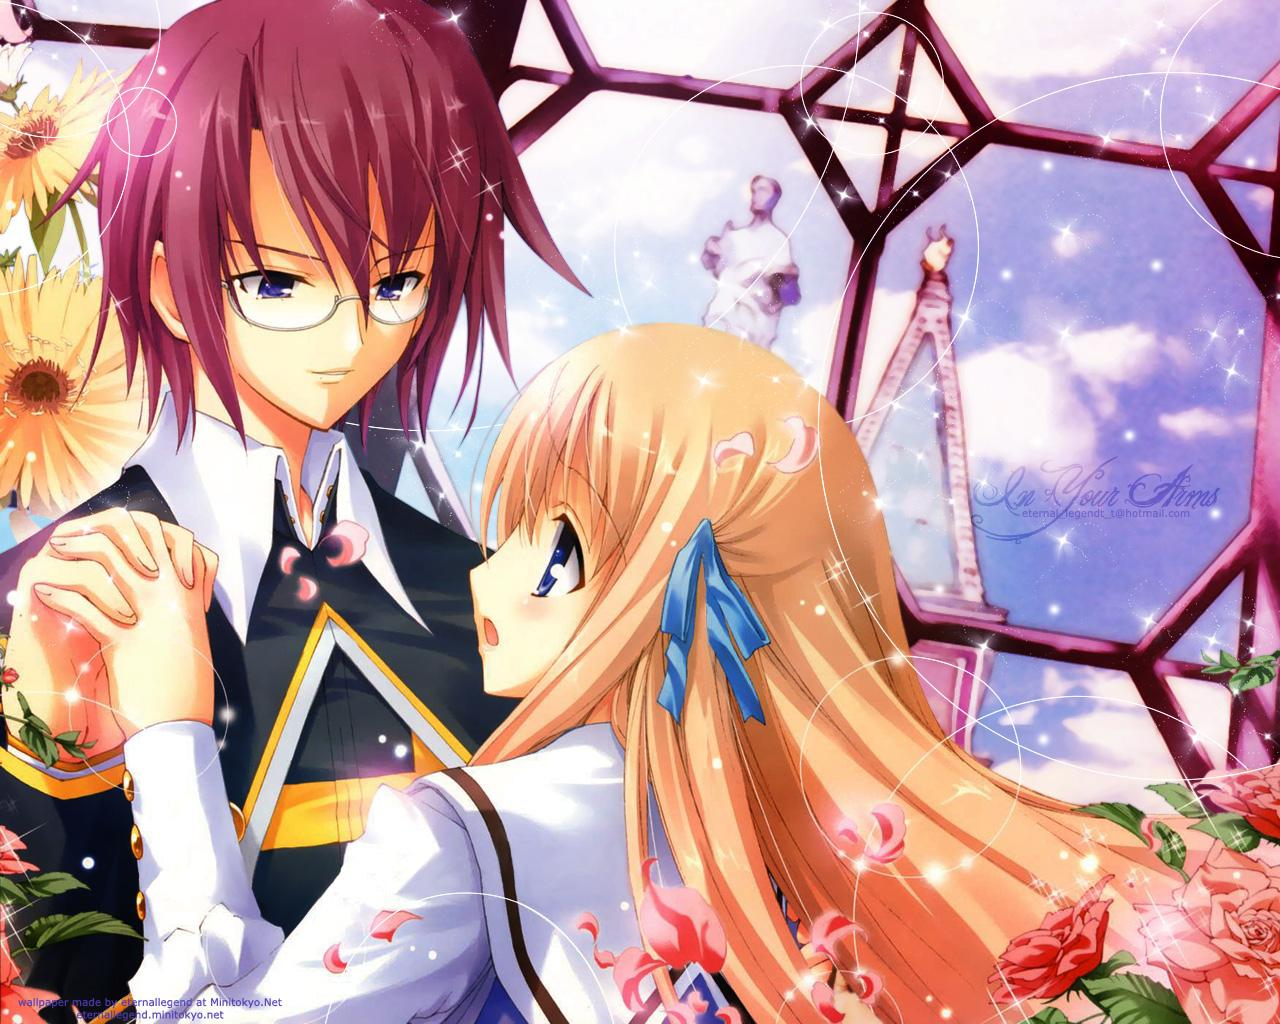 Dakaroth Images Anime Boy Girl HD Wallpaper And Background Photos